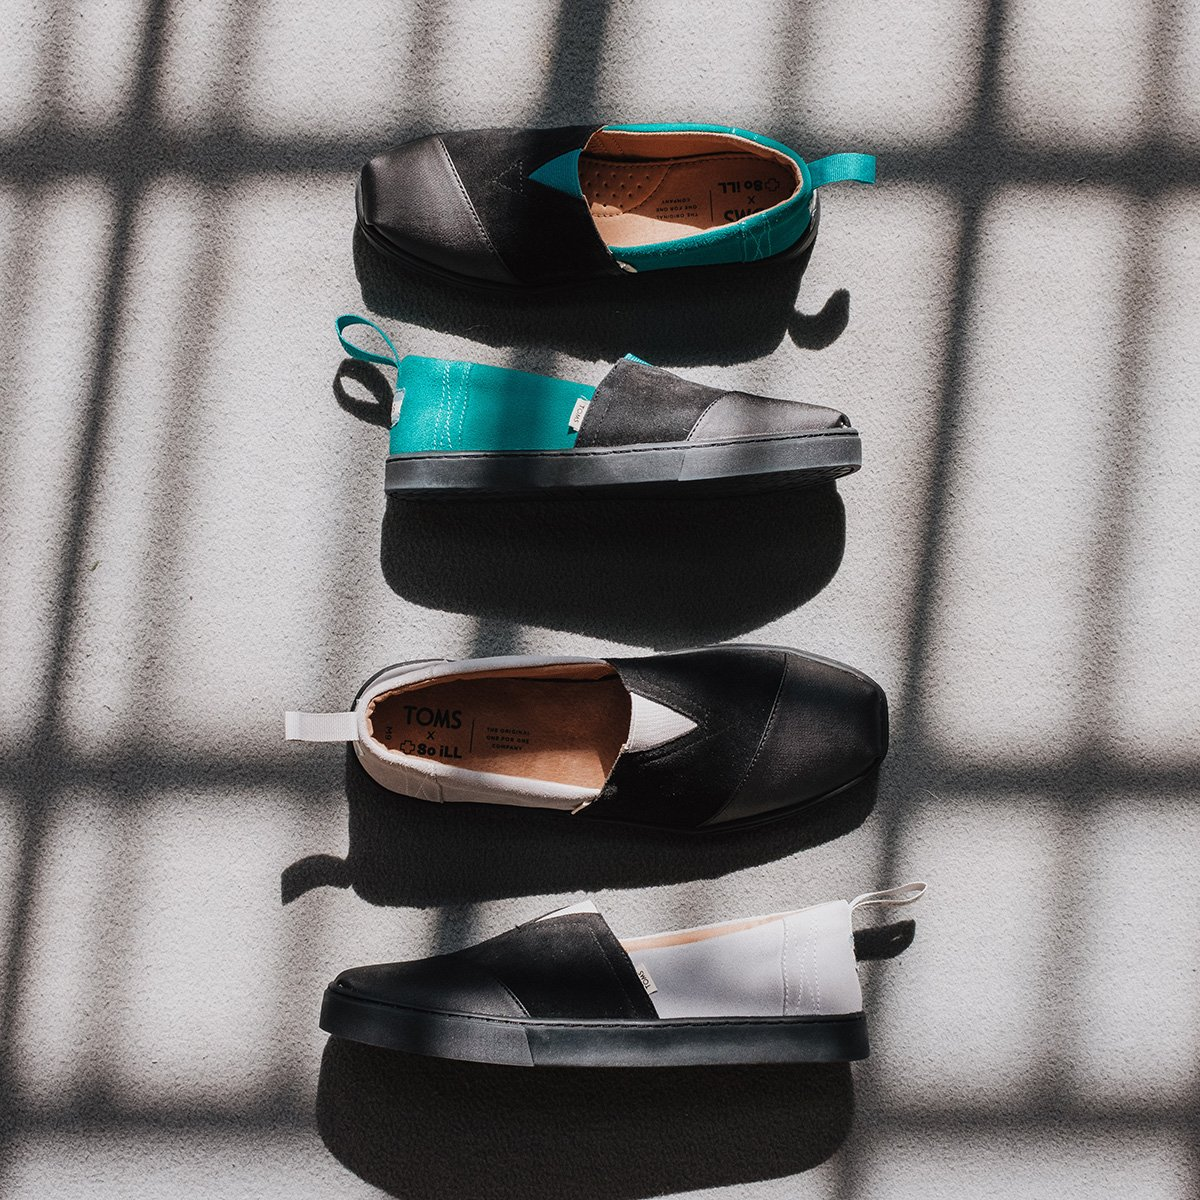 a5aaaafef96 TOMS and  soillholds partnered to create rock climbing shoes and rock  climbing inspired limited-edition slip-ons. Learn more   https   bddy.me 2UUThIj ...